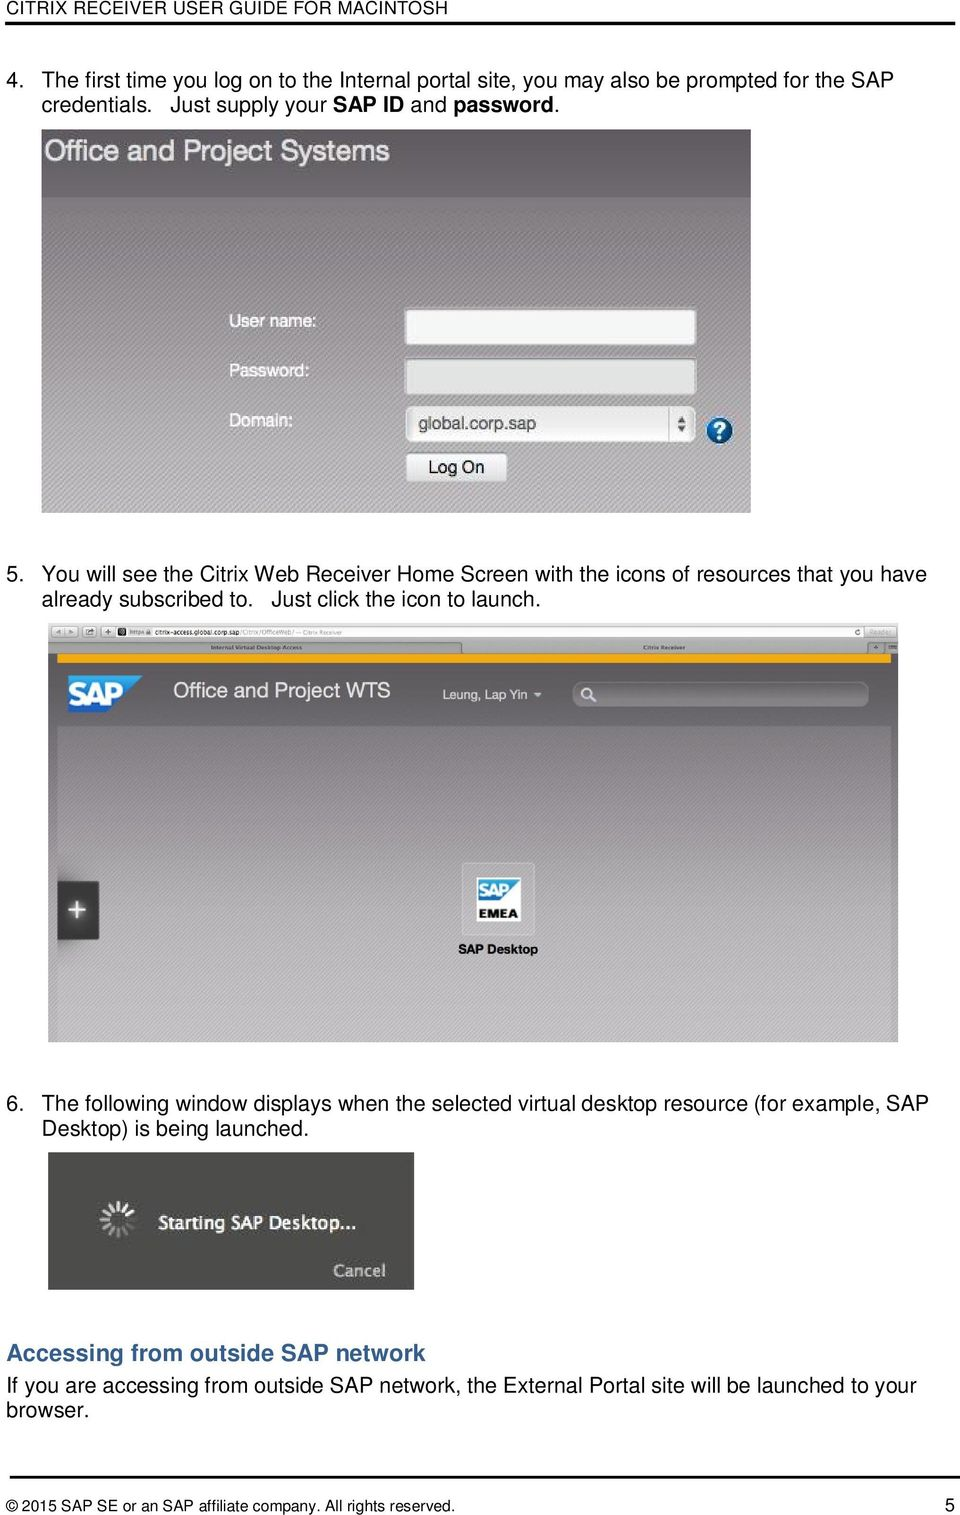 The following window displays when the selected virtual desktop resource (for example, SAP Desktop) is being launched.